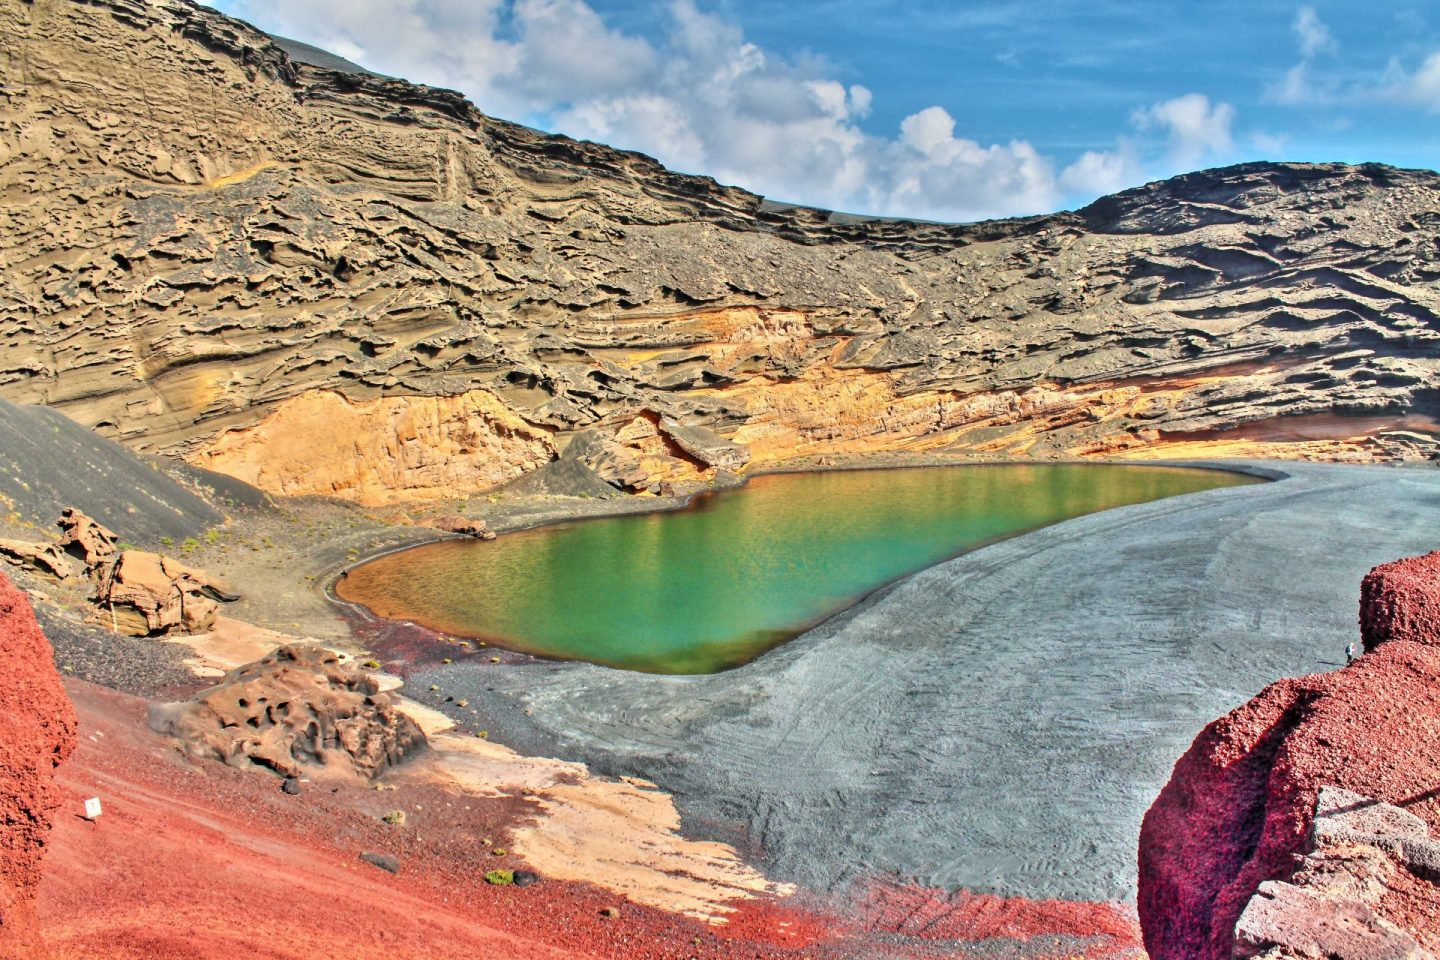 El Lago Verde near El Golfo in Lanzarote. Image shows a green within a volcanic crater, surrounded by black sand.